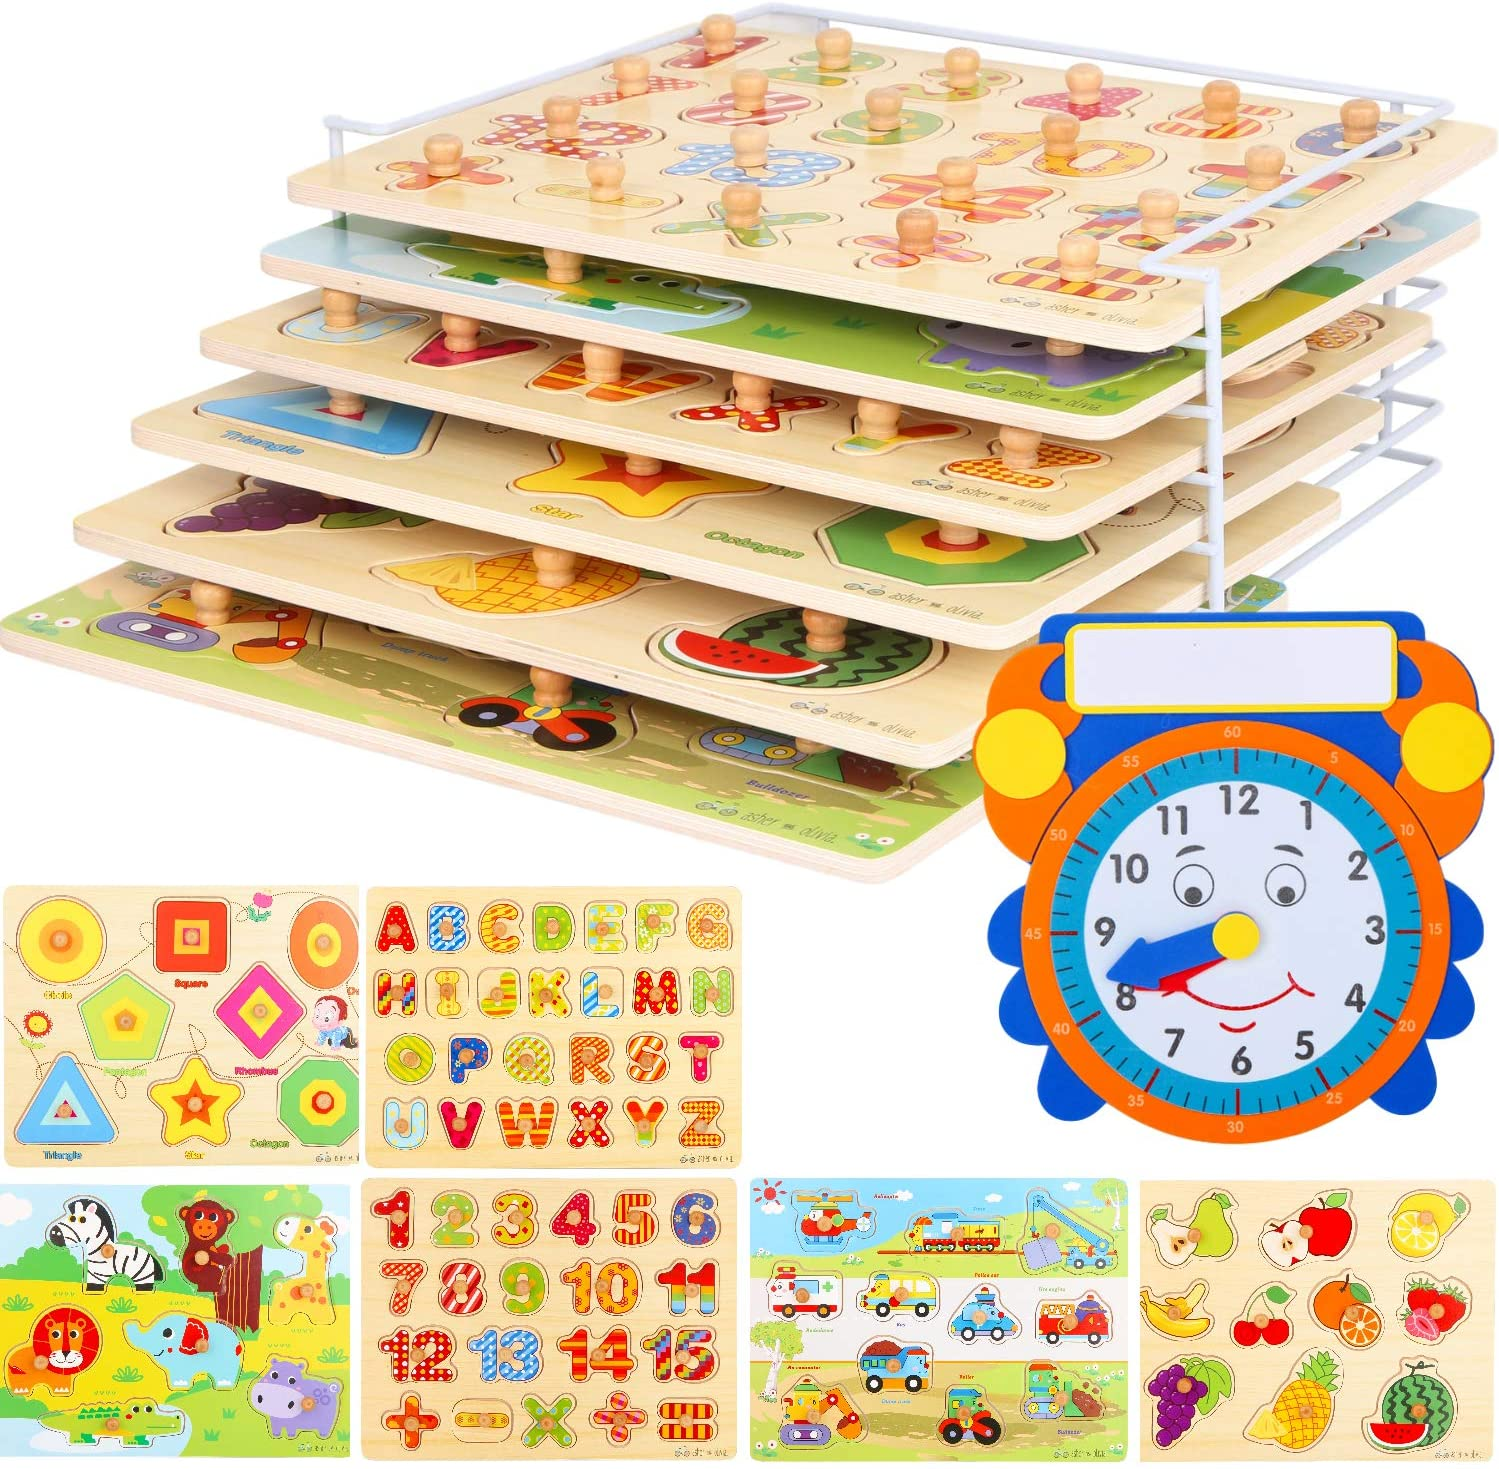 Wooden Toddler Puzzles and Rack Set - (6 Pack) Bundle with Storage Holder Rack and Learning Clock - Kids Educational Preschool Peg Puzzles for Children Babies Boys Girls - Alphabet Numbers Zoo Cars: Toys & Games